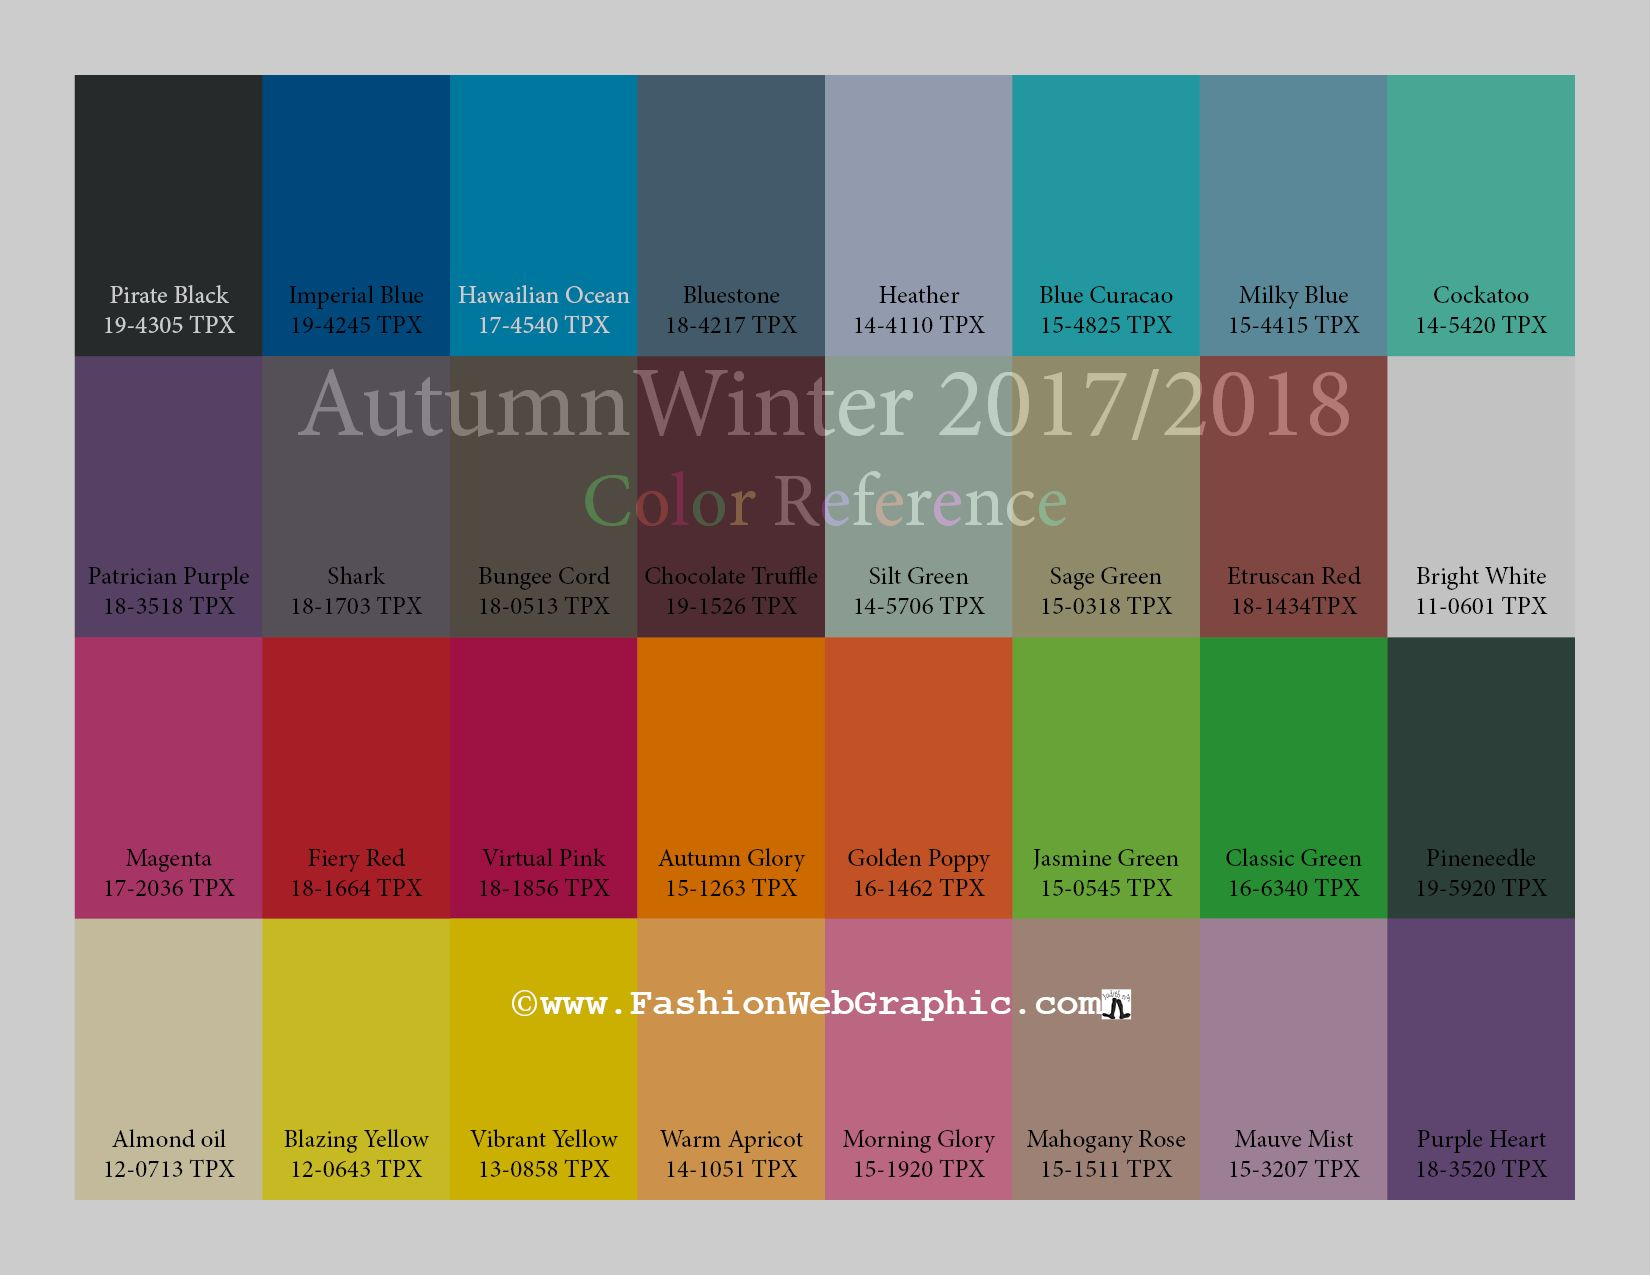 Autumn Winter 2017 2018 Trend Forecasting Is A Color Guide That Offer Seasonal Inspiration Key Direction For Women Men S Fashion